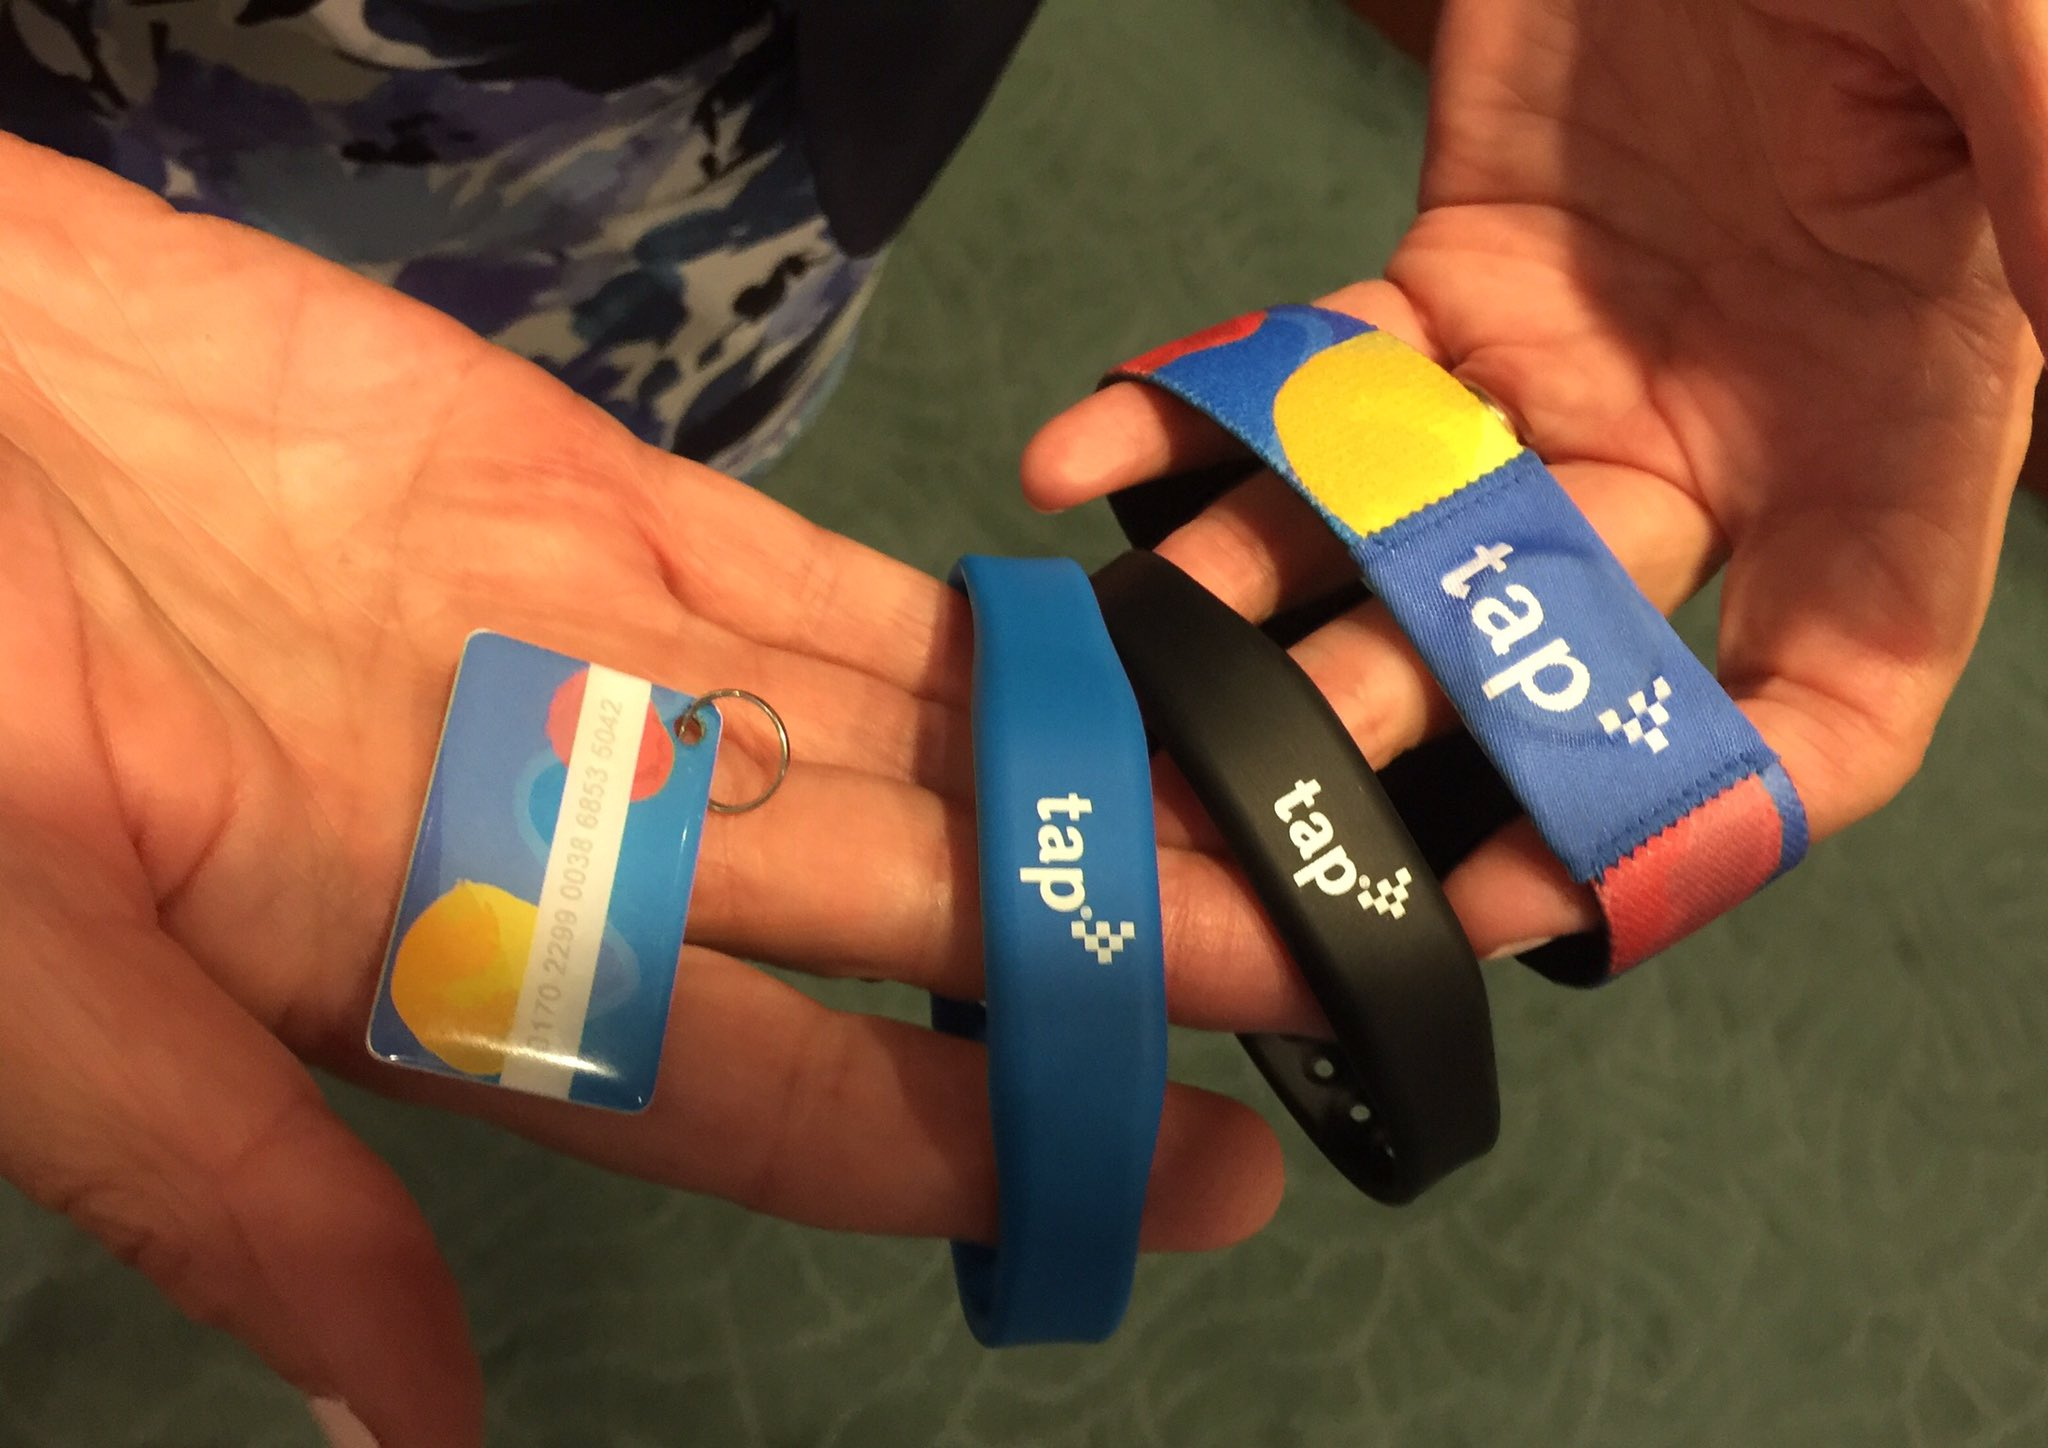 Metro to offer TAP wristbands, keychains; debut TAP phone app in winter